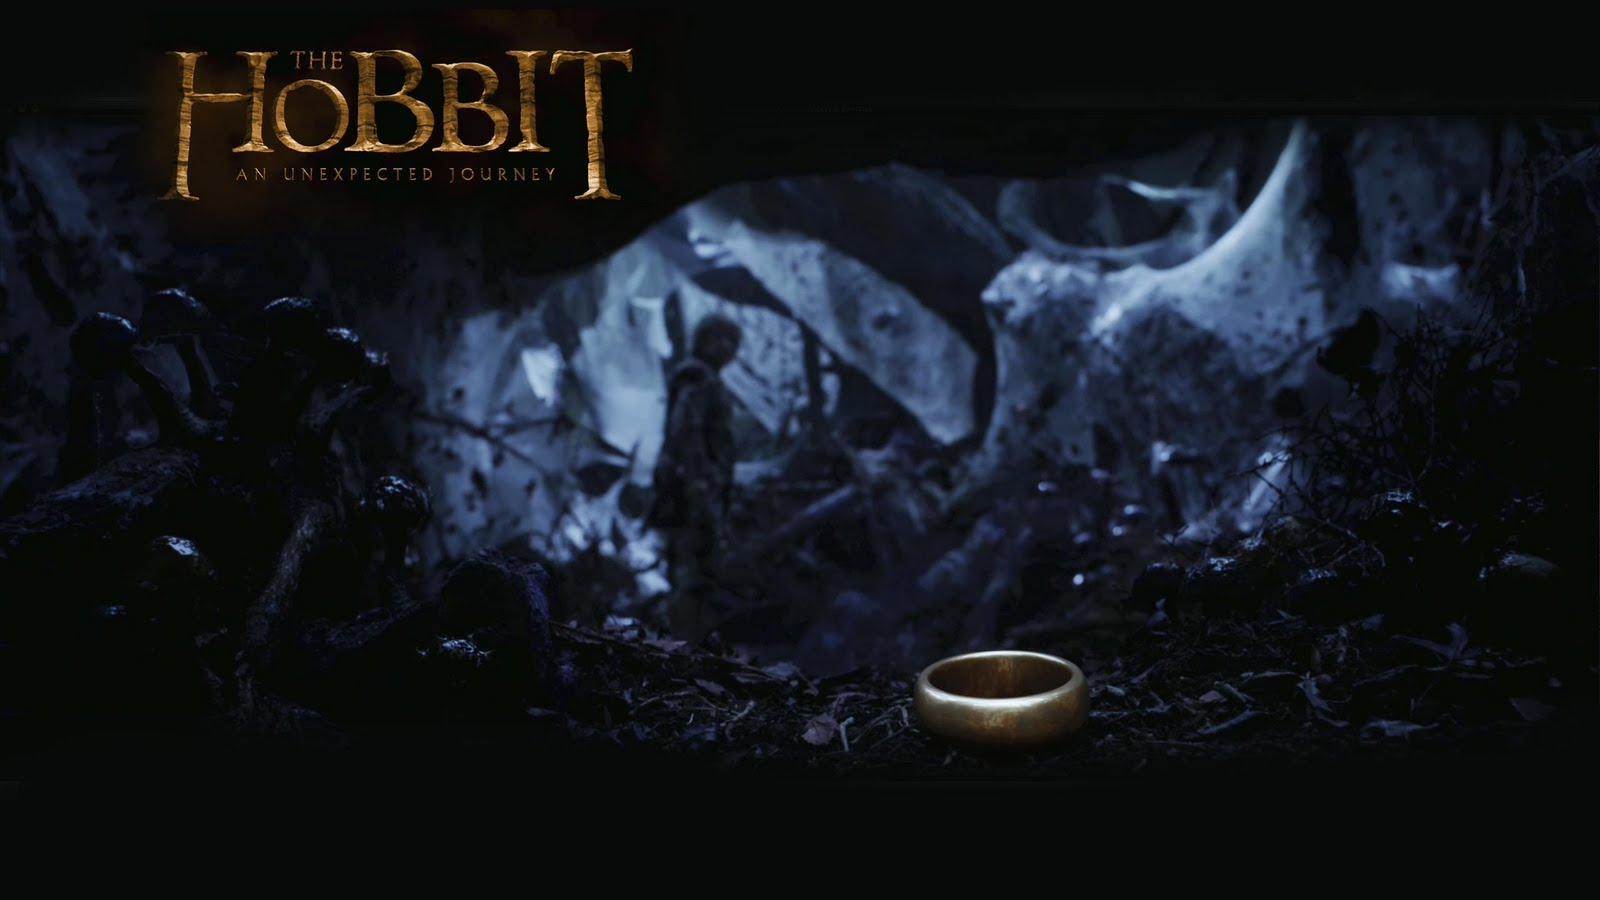 The Hobbit - The Ring wallpaper